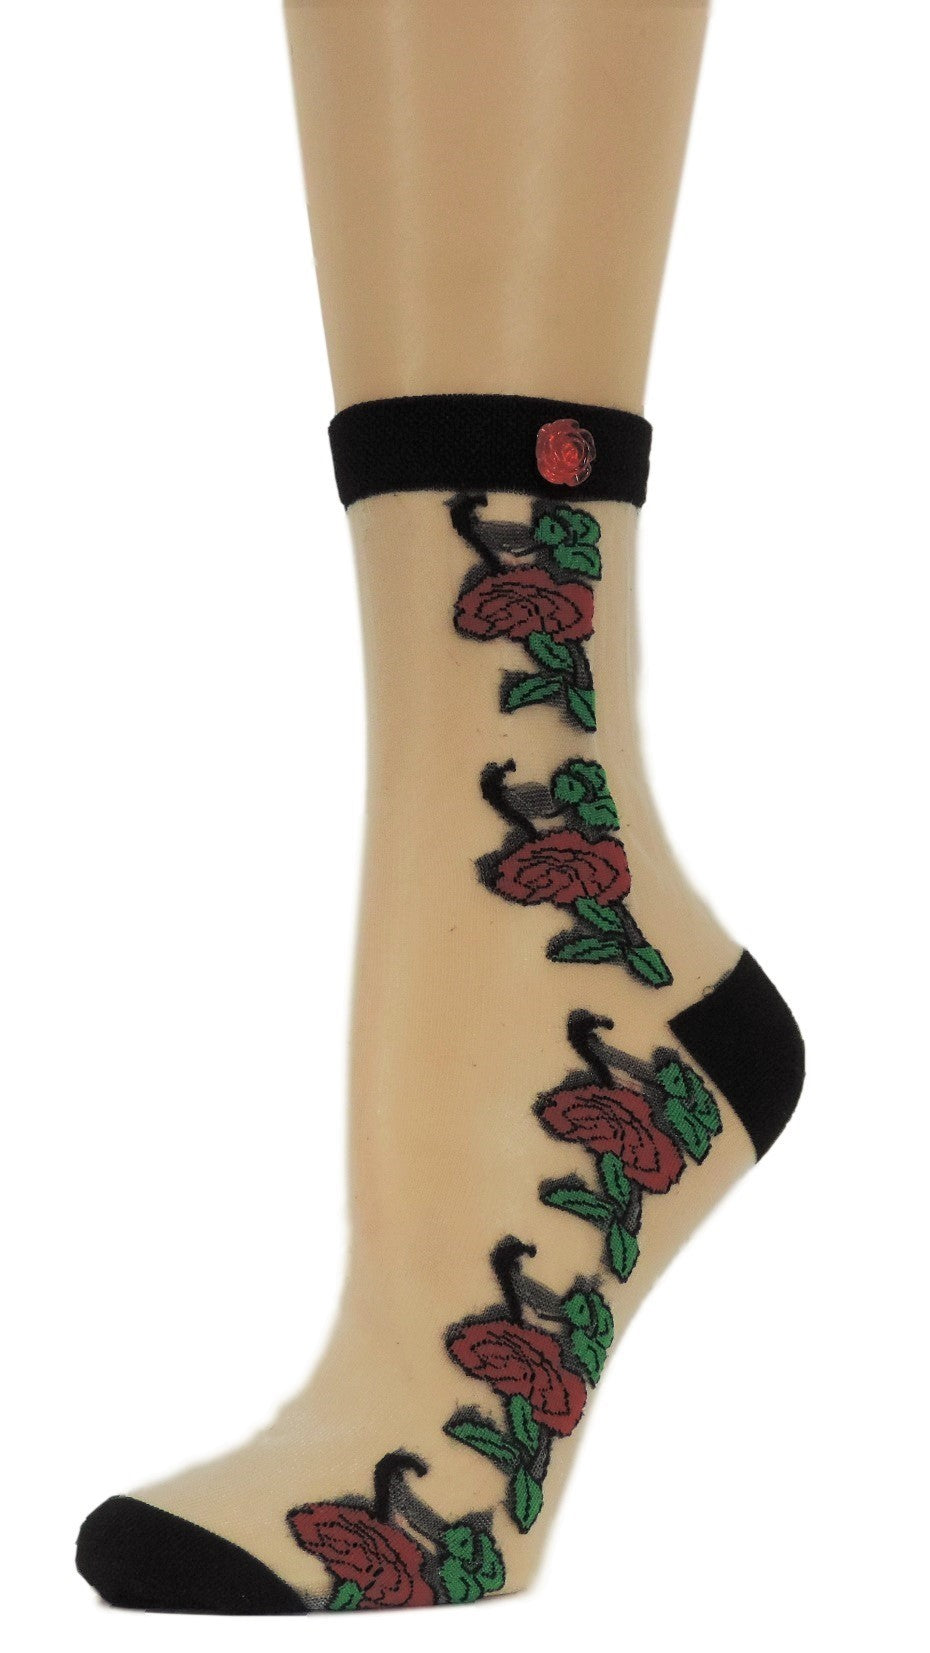 Big Red Roses Custom Sheer Socks with beads - Global Trendz Fashion®